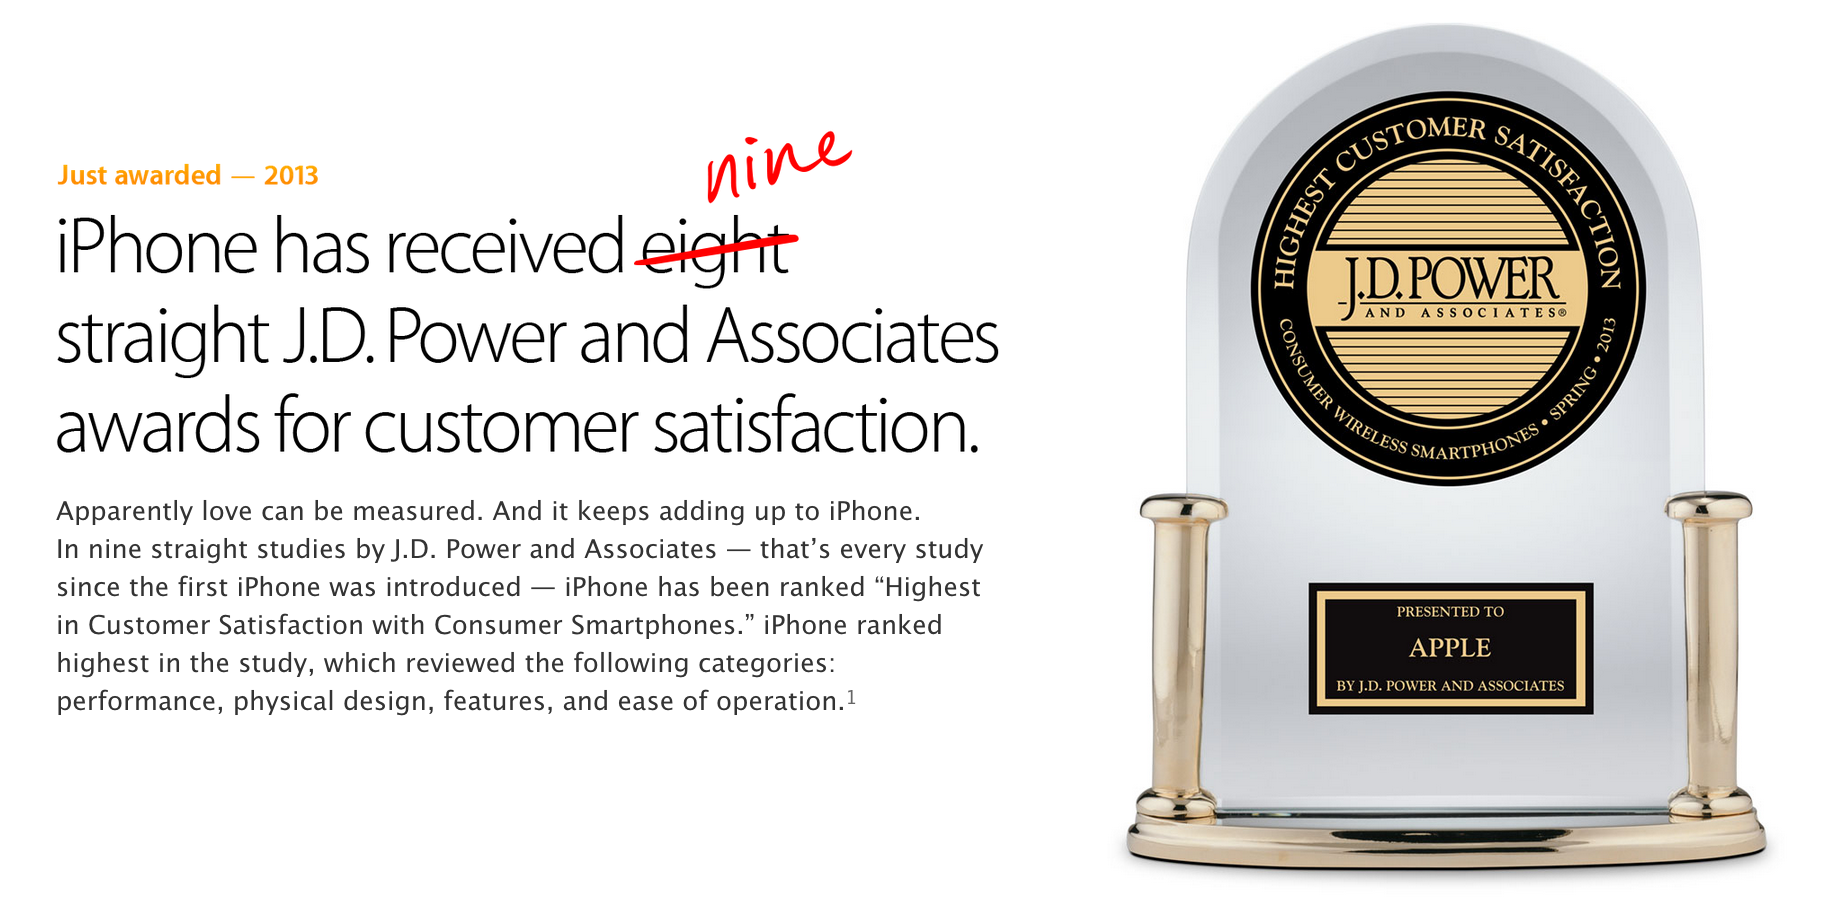 iphone-jd-power-associates-award-9